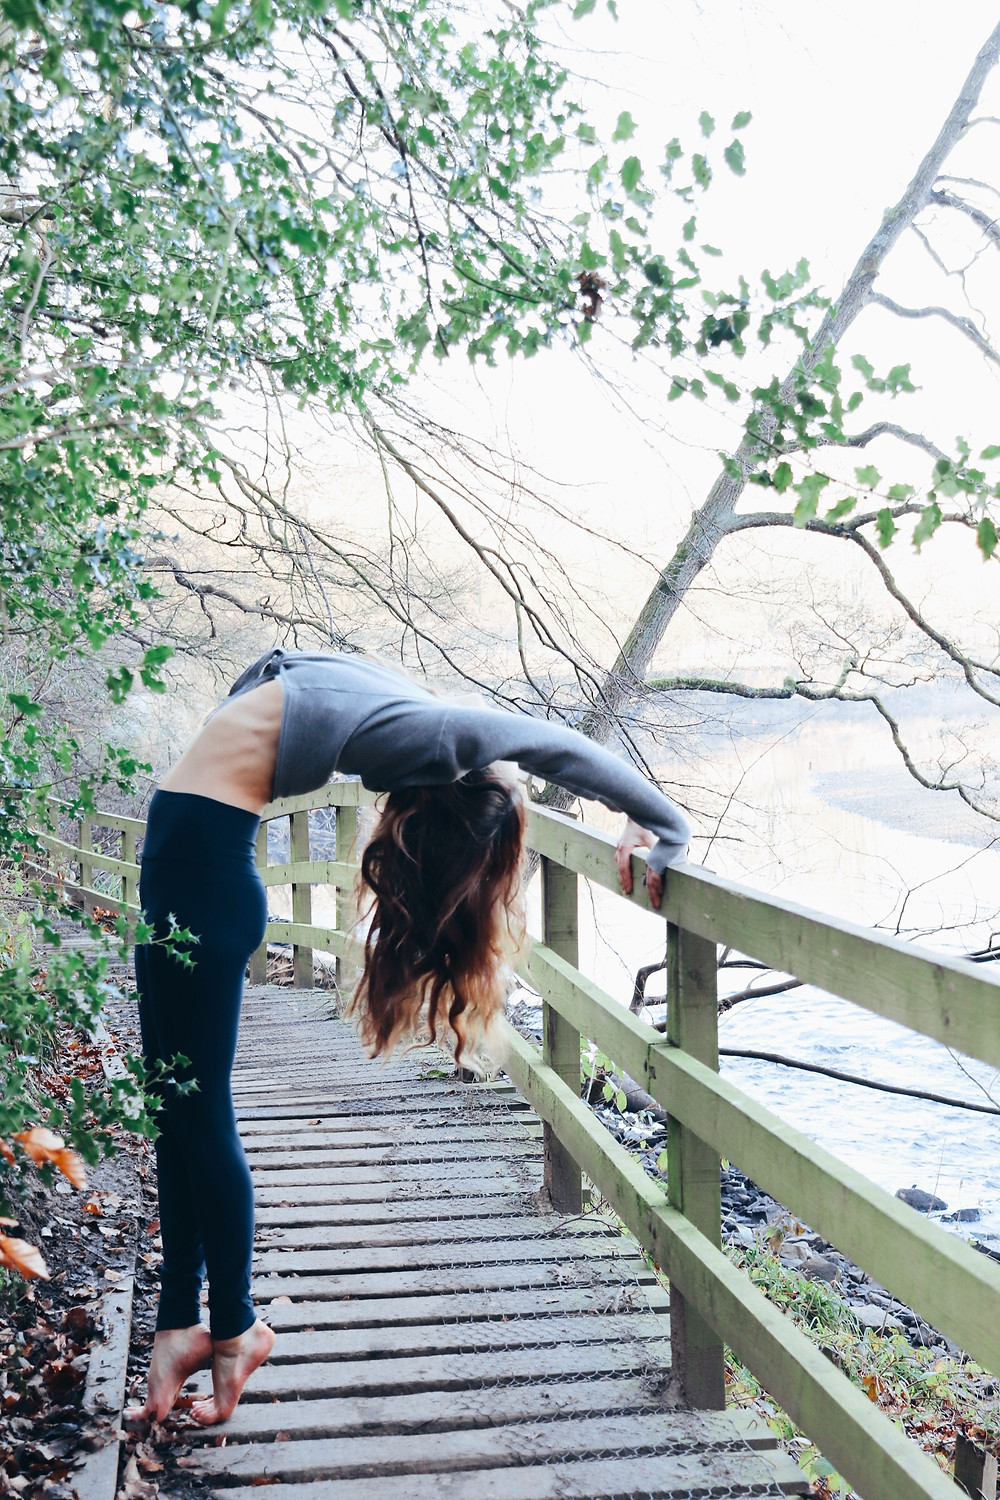 Yoga girl - nature